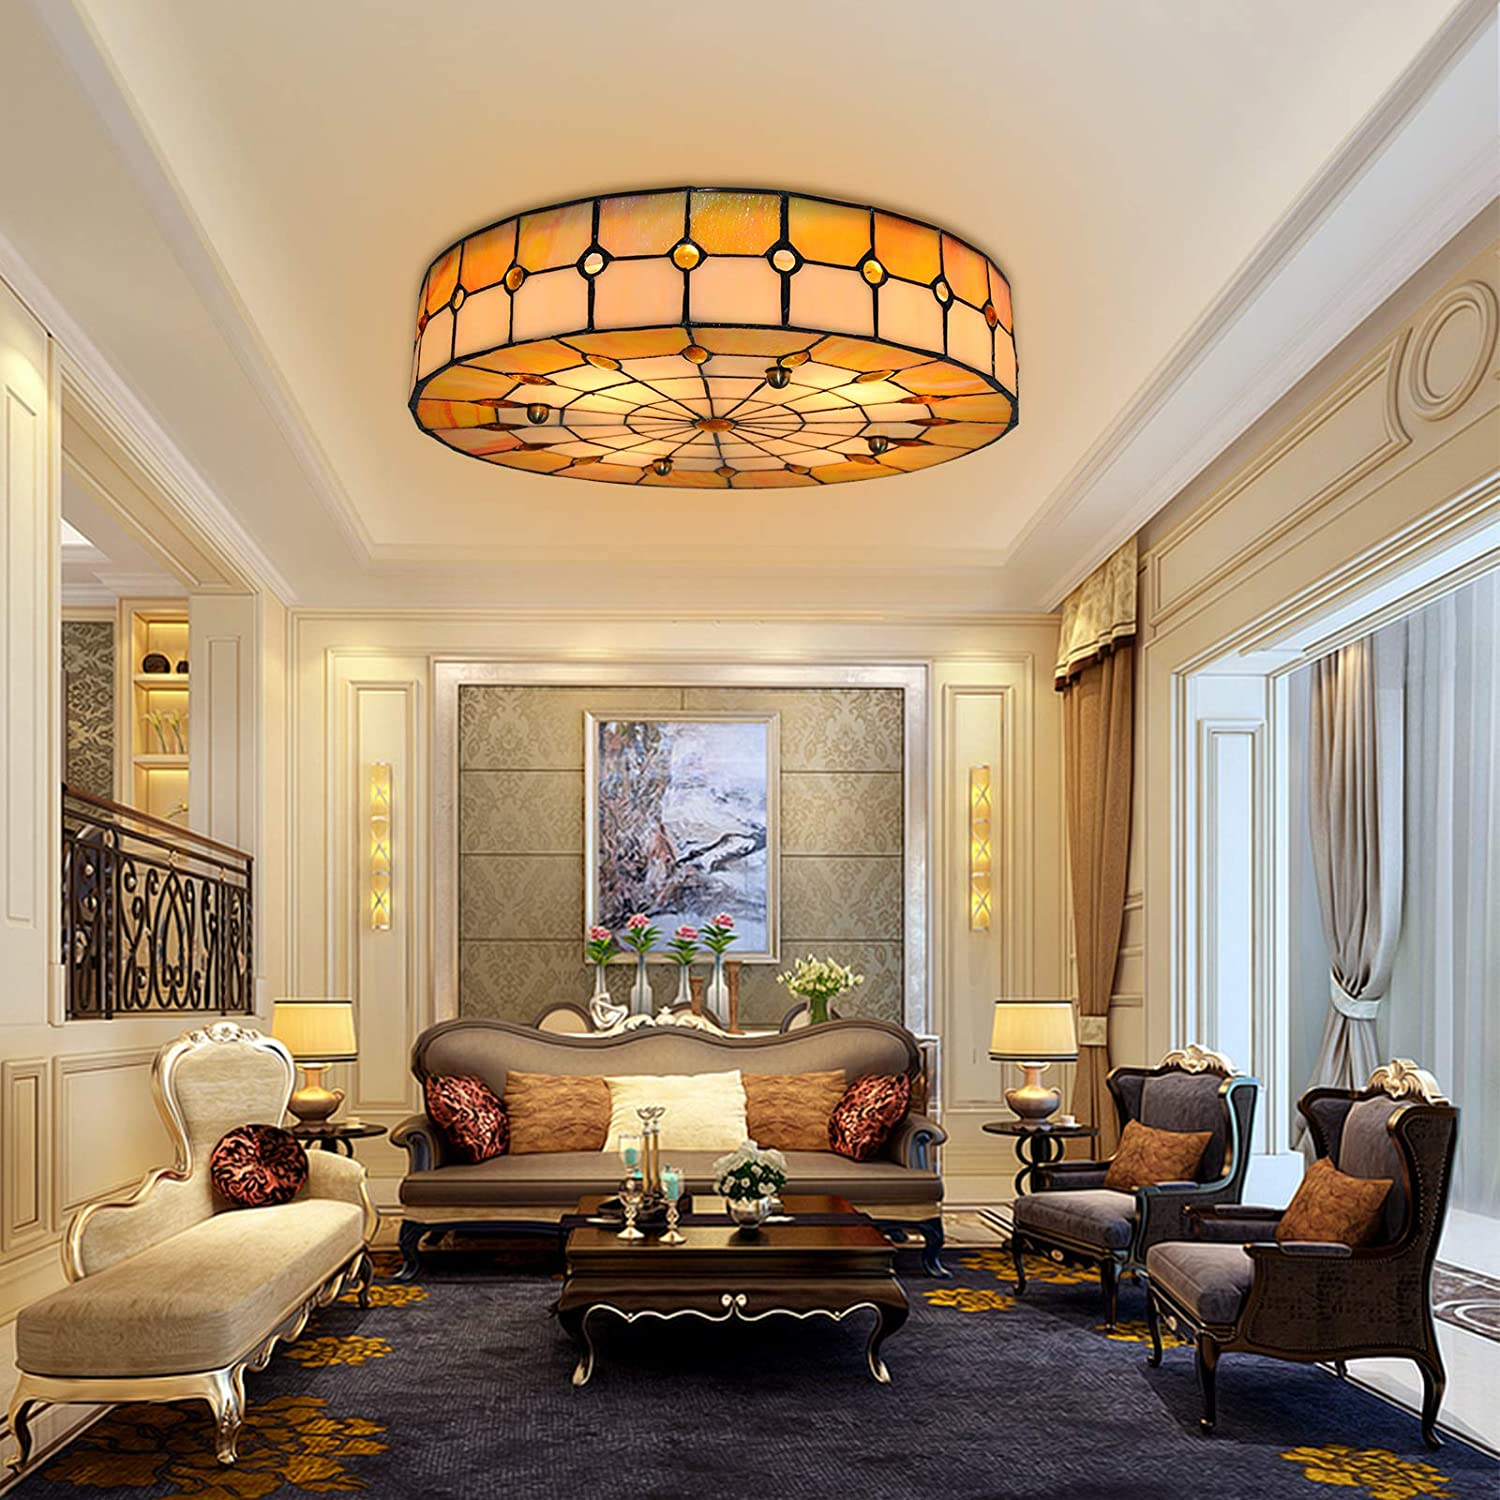 Tiffany Ceiling Topics on Direct sale of manufacturer TV lamp Yellow Square to The Close Round Li